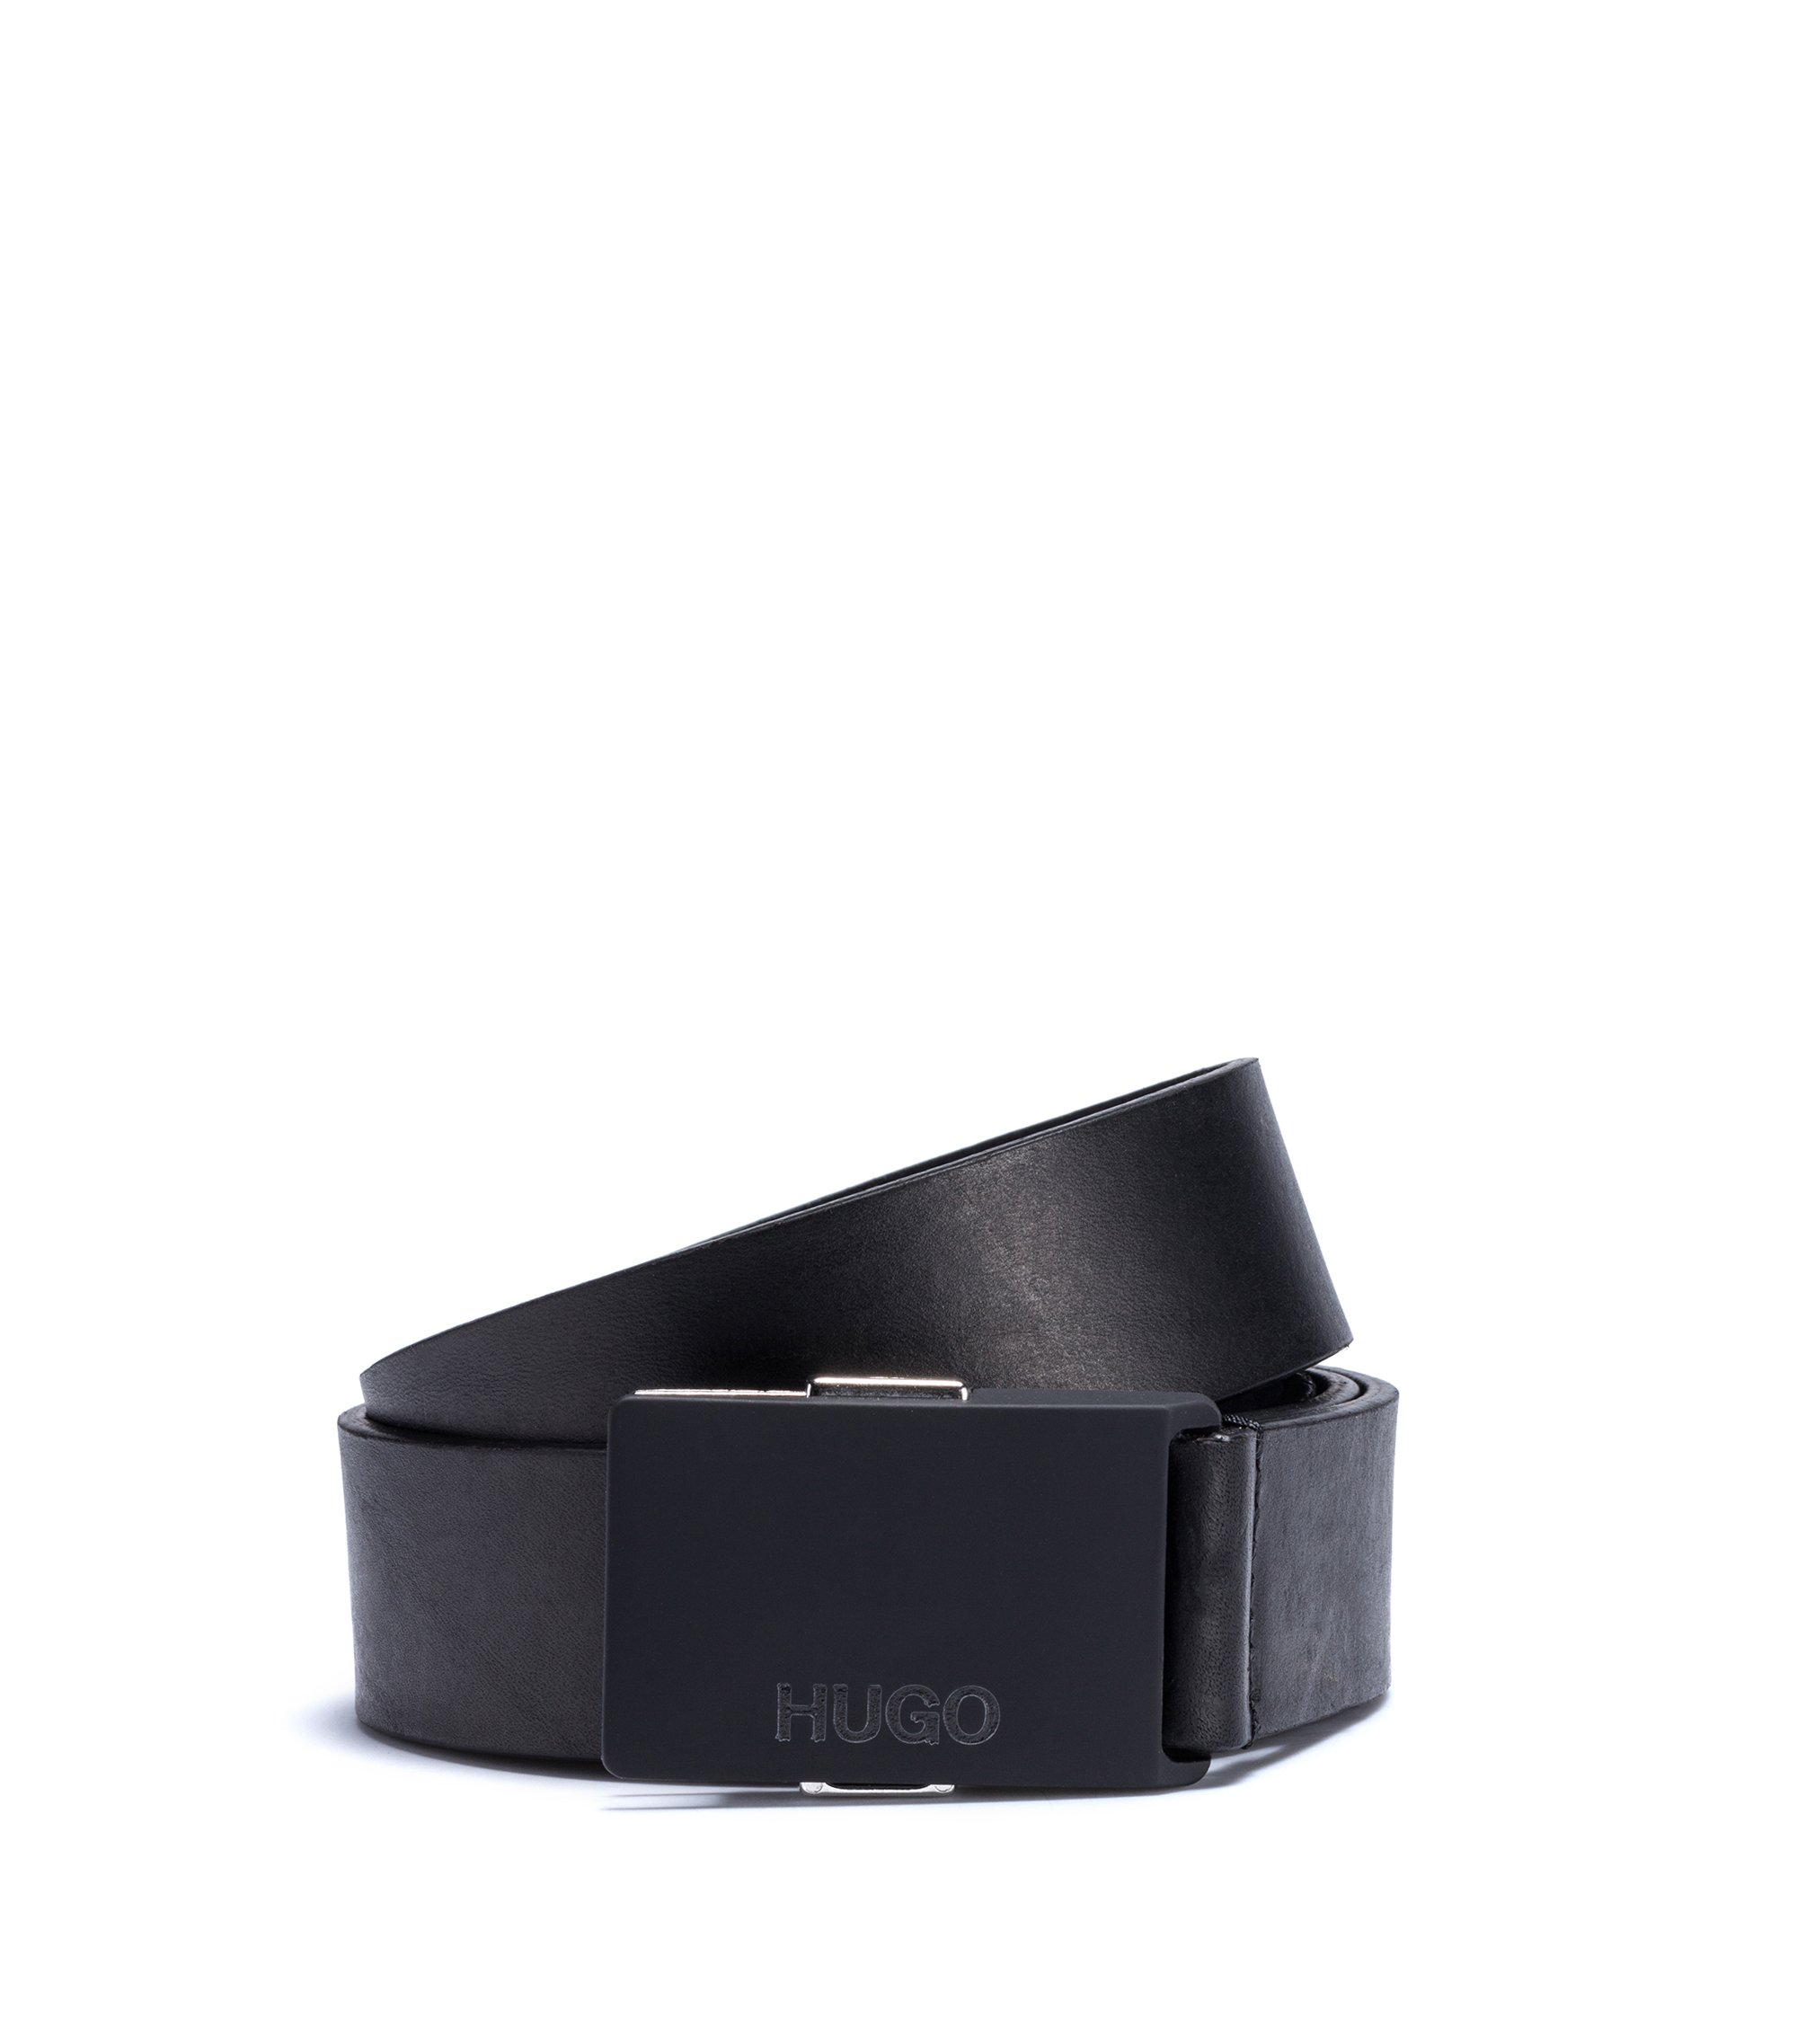 Leather belt with rubber plaque buckle, Black